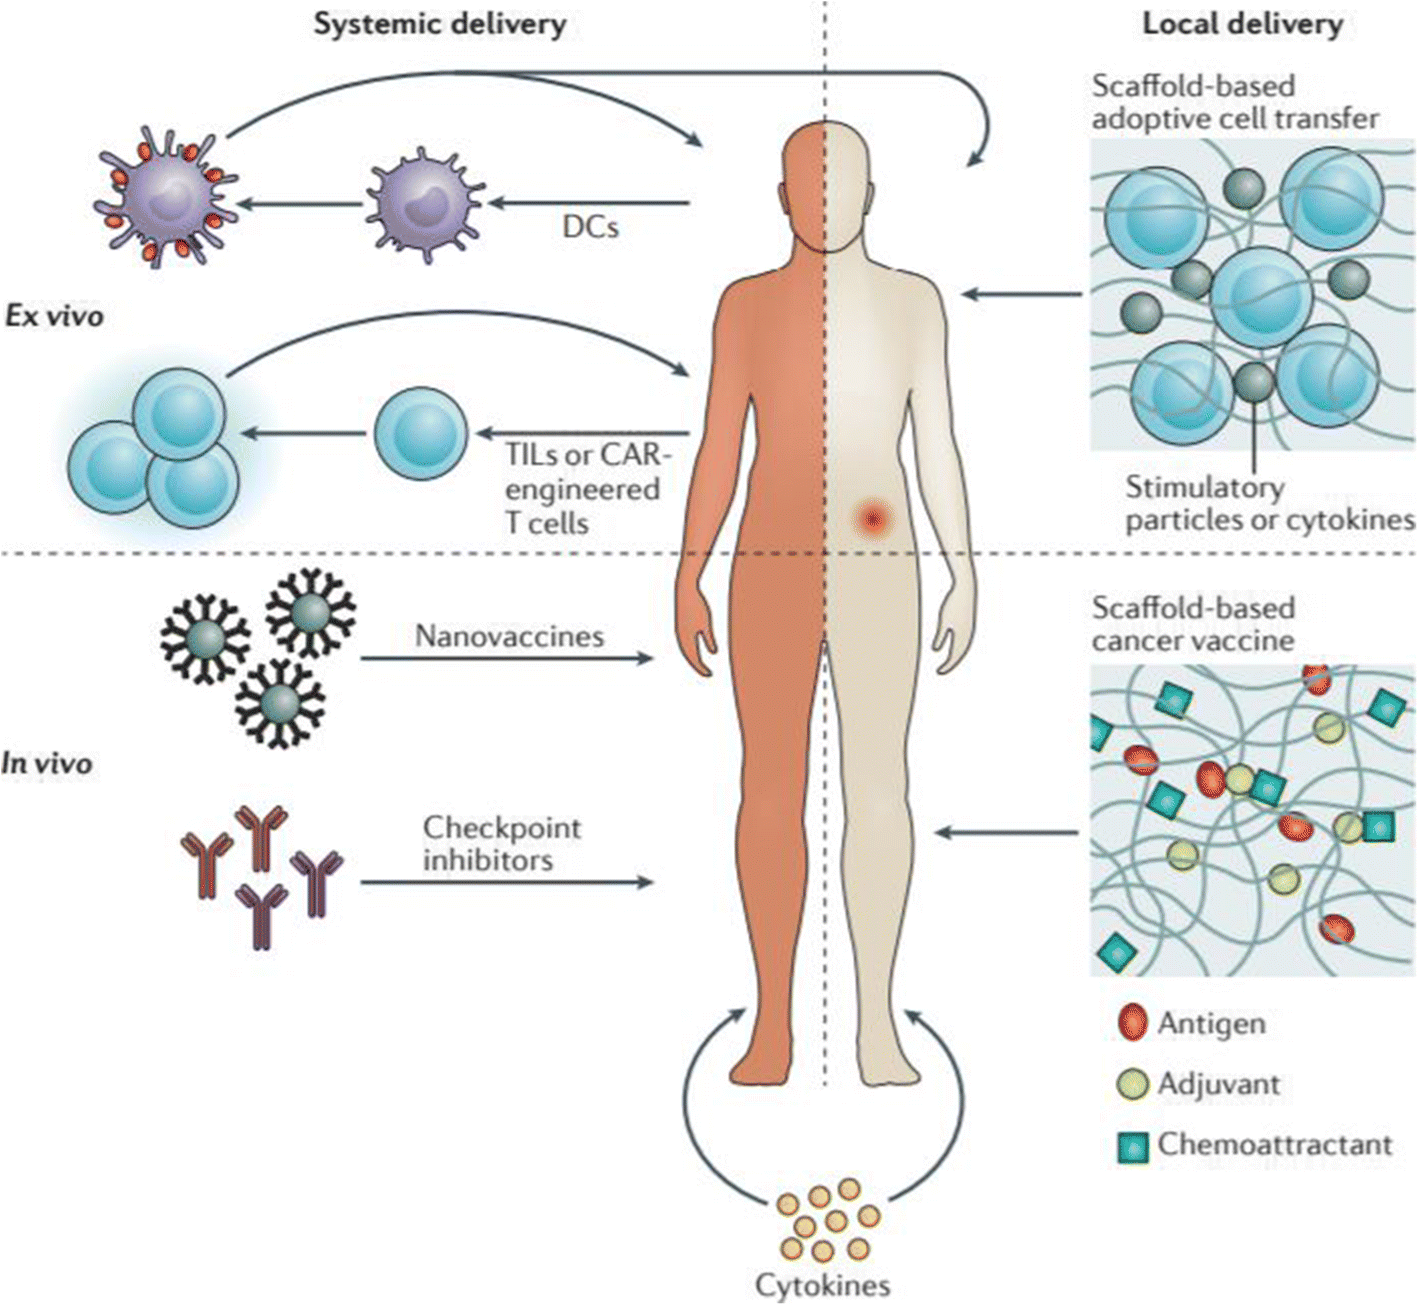 New Opportunities For Nanoparticles In Cancer